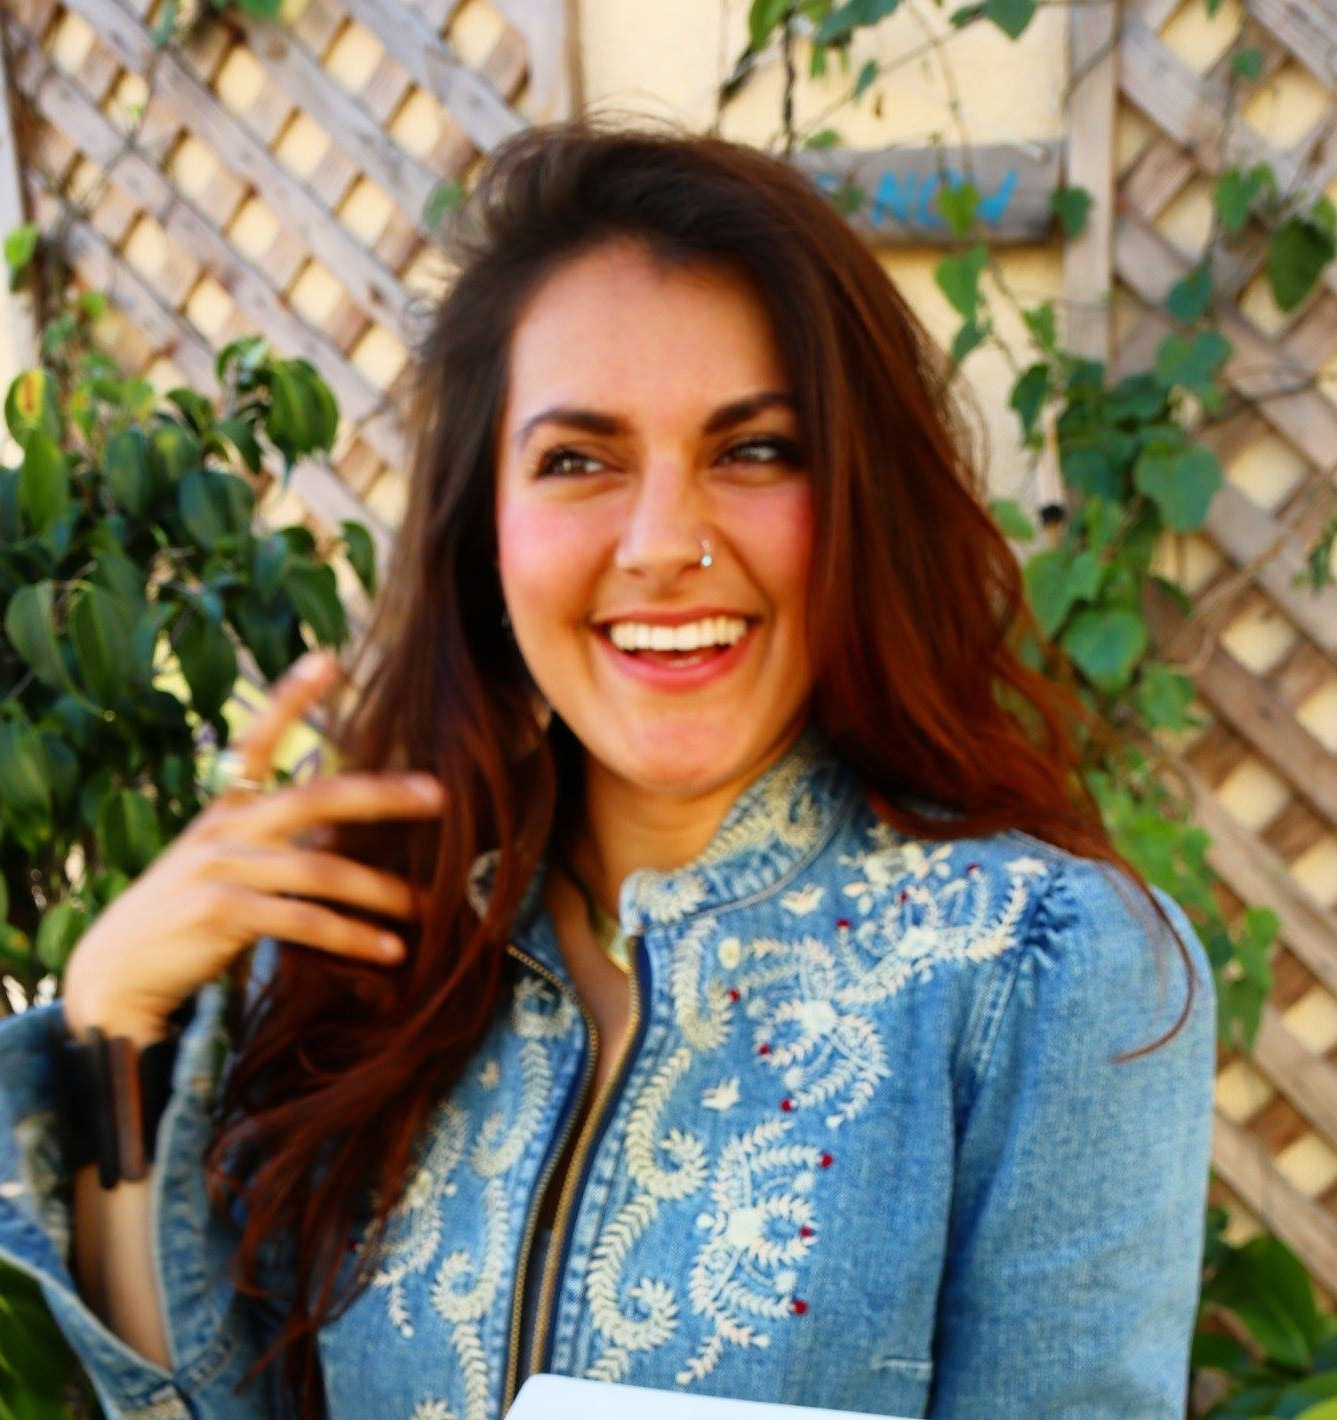 Marina Qutab - Marketing Specialist   Marina is a plastic-free and Zero Waste Vegan Influencer and marketing specialist. The co-founder of the first zero waste shop in Southern California, she has been advocating for a more just and thriving planet for over 8 years. An exemplification of all that she wishes to create, she is a leading visionary in the conscious lifestyle movement, especially in San Diego, CA.